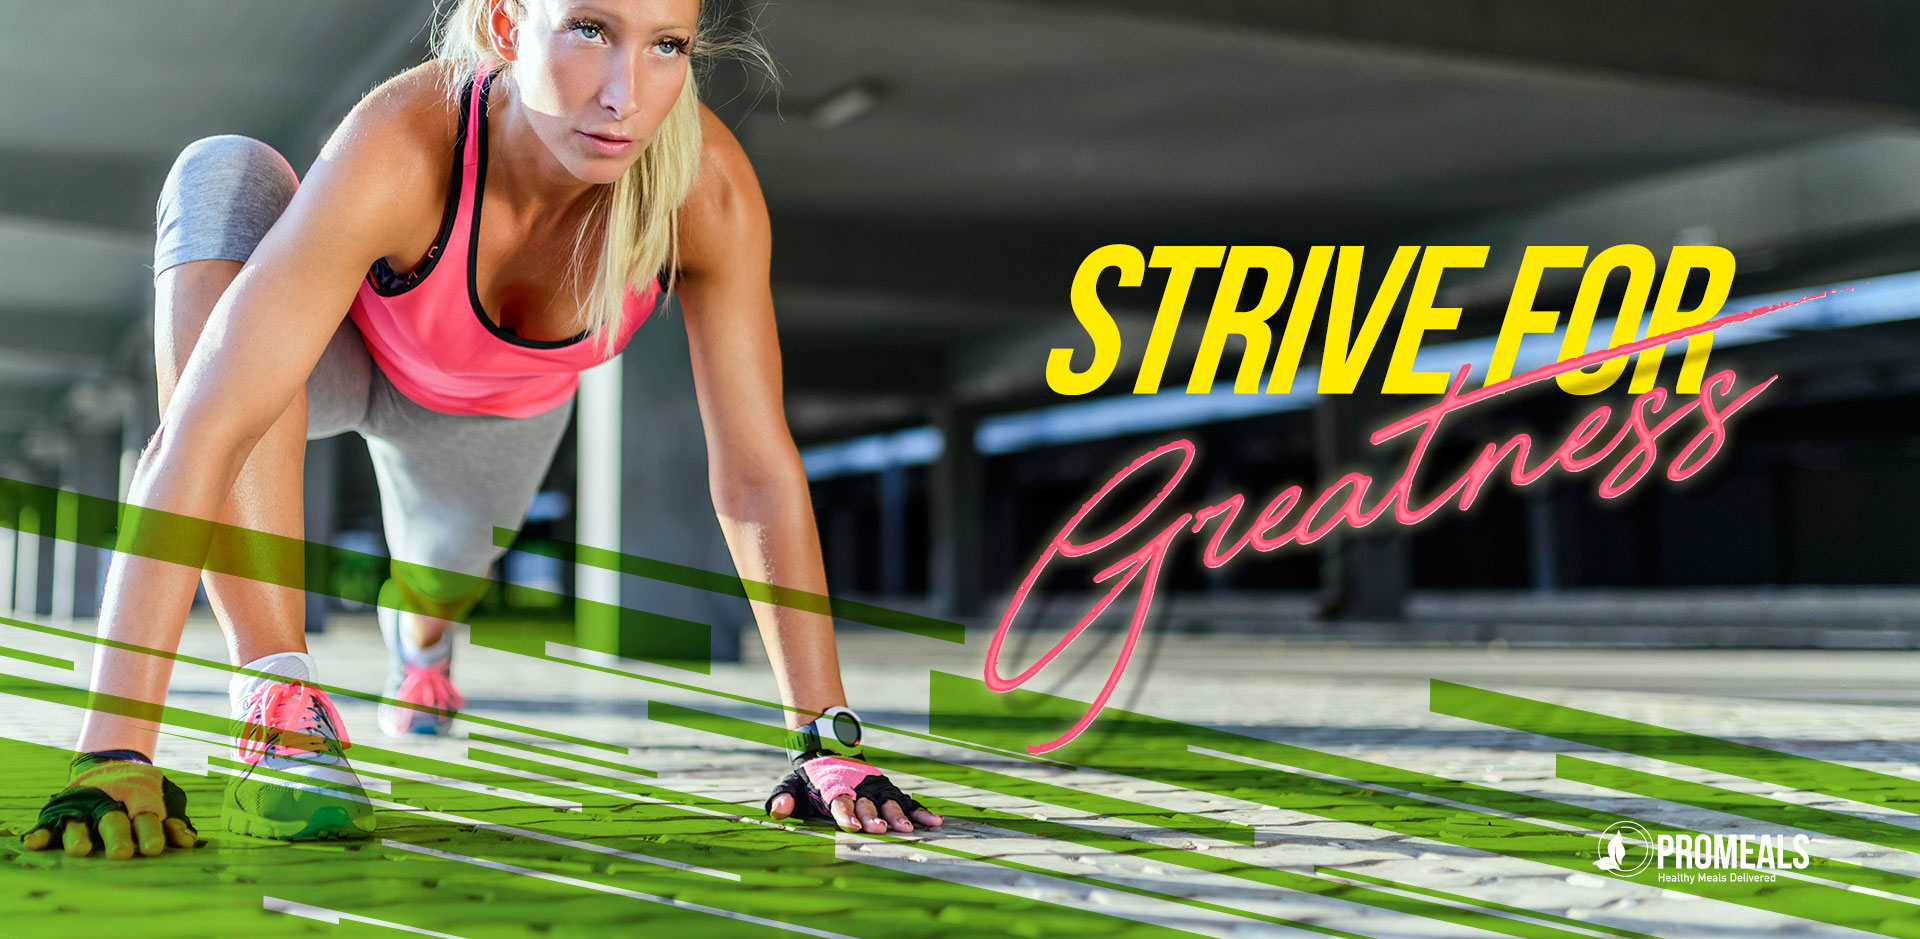 strive for greatness - ProMeals Houston, Tx.